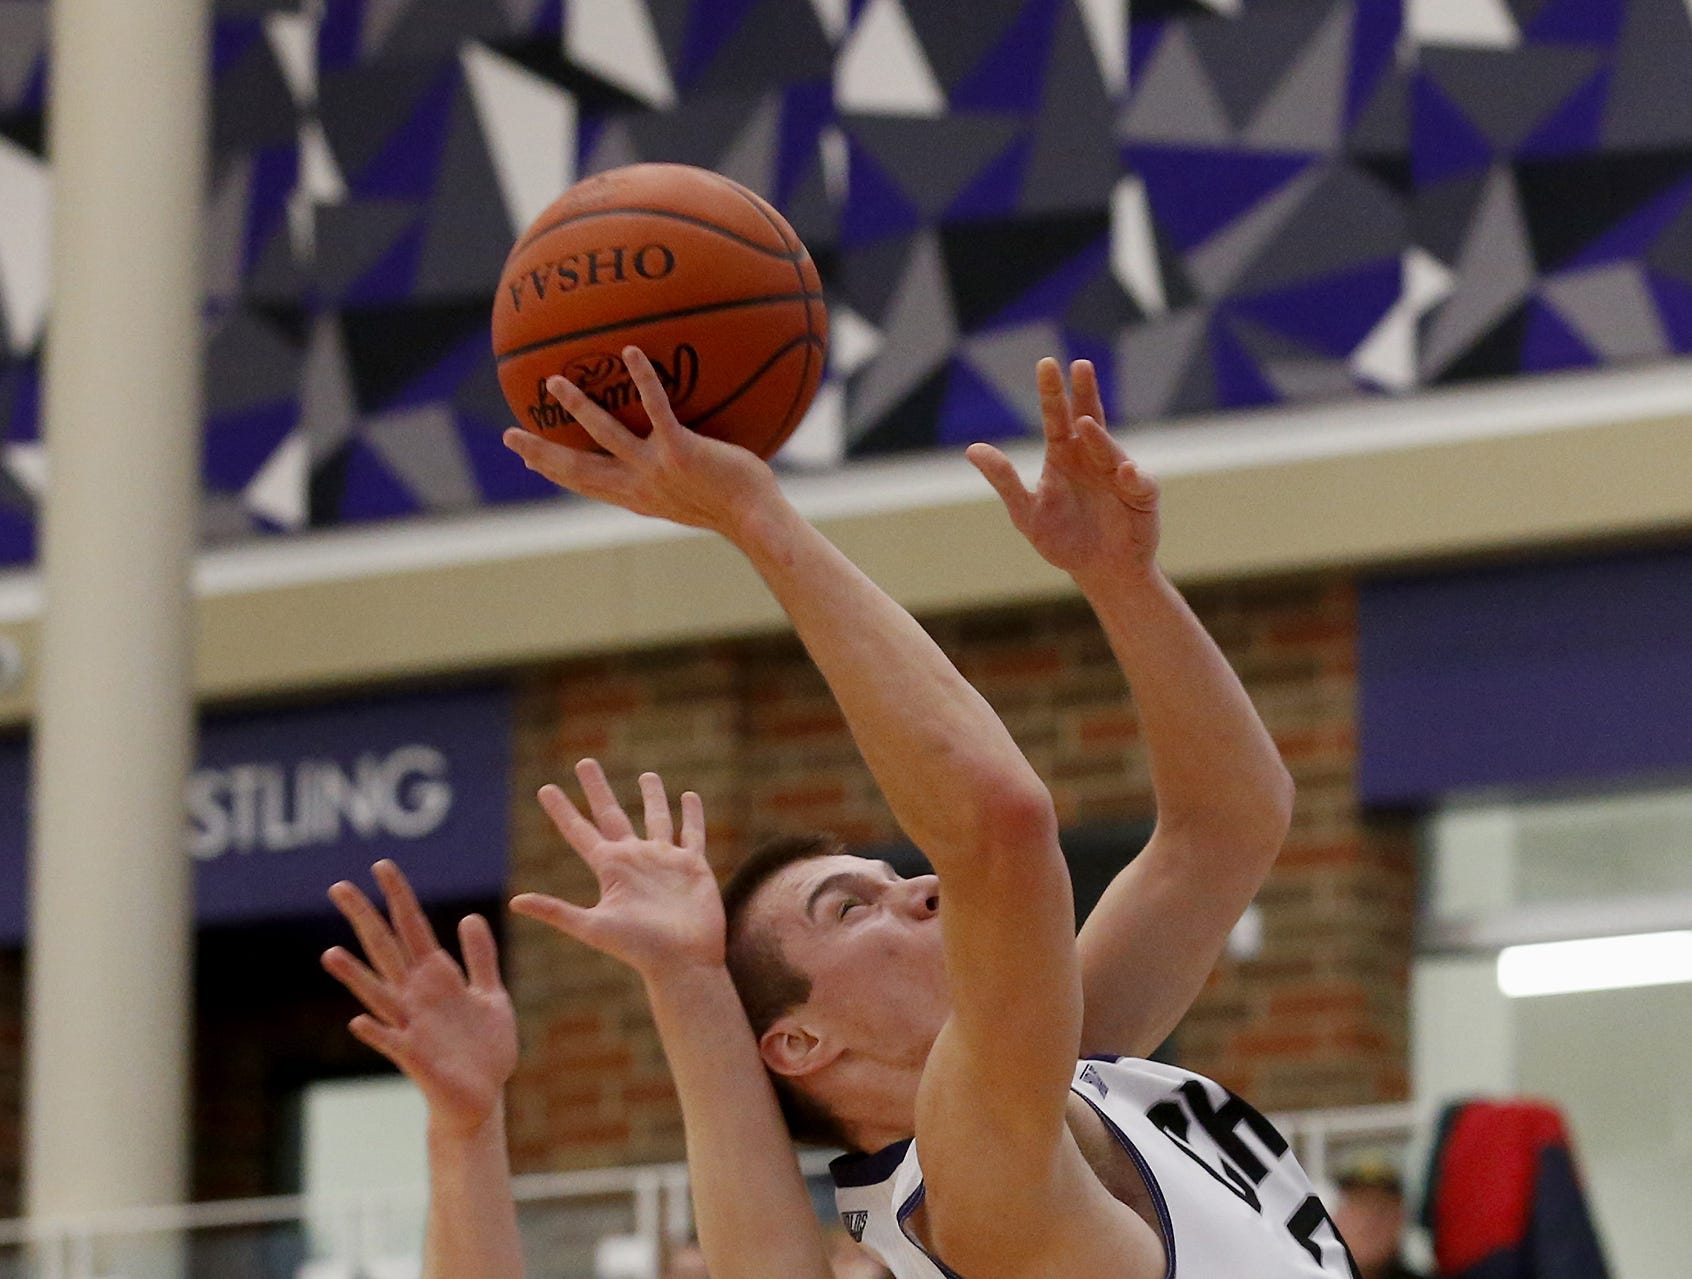 Cincinnati Hills Christian Academy guard Jack Kolar draws a shooting foul from Sycamore guard Oliver Wittenbaum during the Midwest King Classic at Jerry Lucas Court in Wade E. Miller Arena in Middletown Saturday, Jan. 19, 2019.